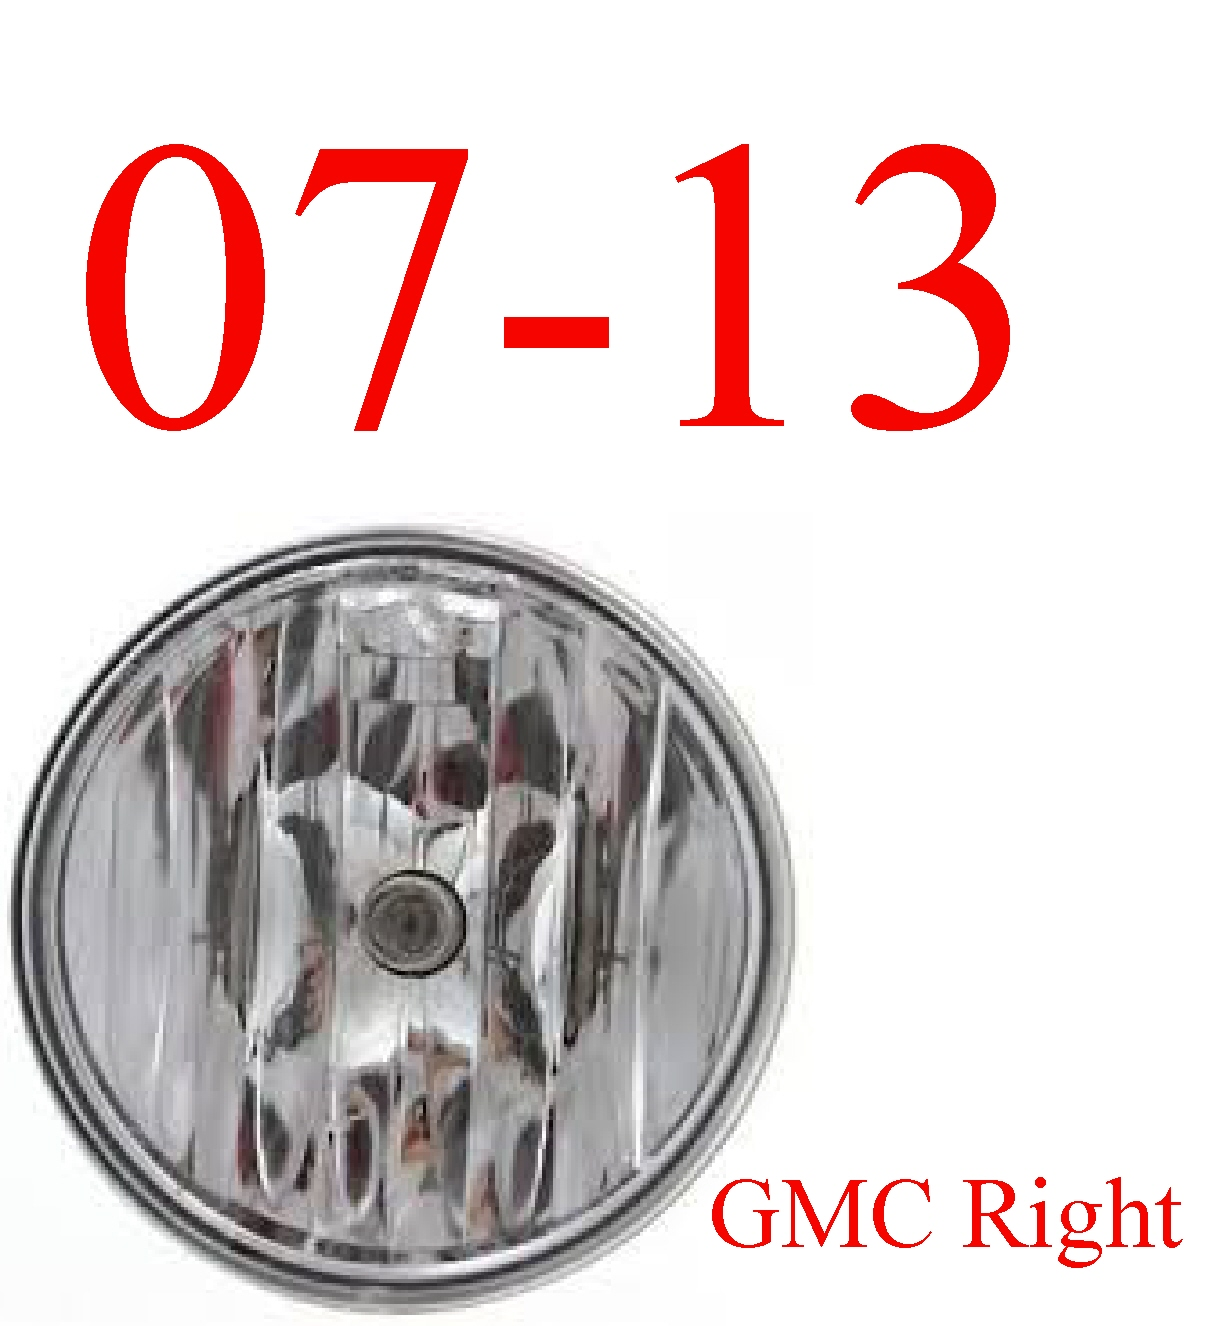 07-13 GMC Right Fog Light, Complete Assembly